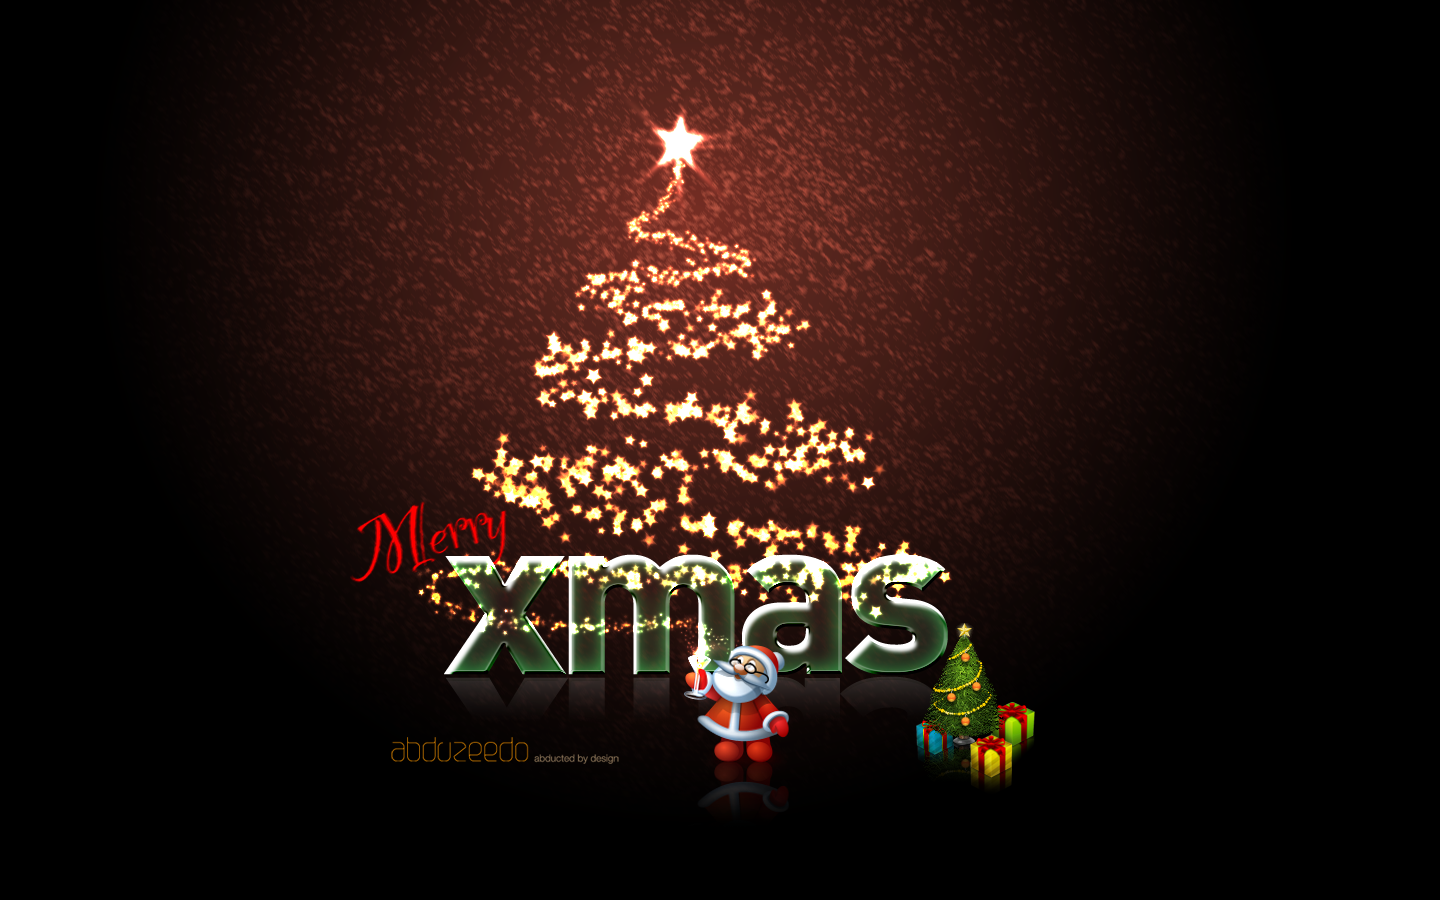 https://3.bp.blogspot.com/-5rB7zryzycA/Tt4MCNTerGI/AAAAAAAAG3M/O1myu2F57WE/s1600/xmas_wallpaper.png